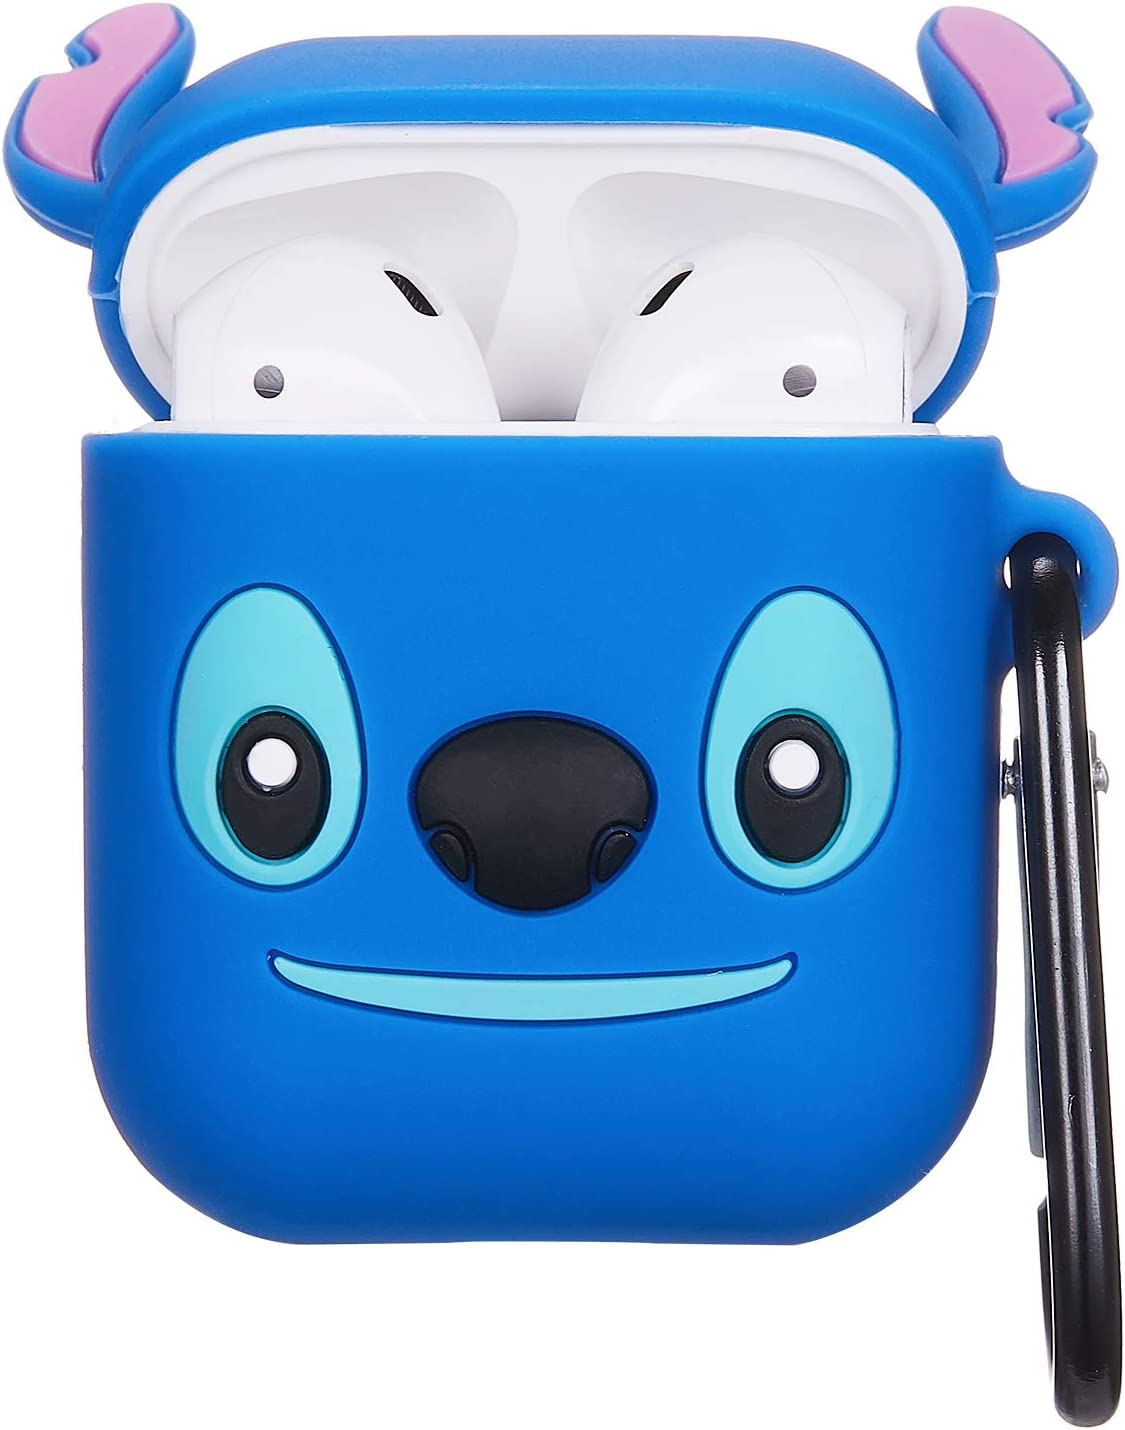 New Stitch Mulafnxal Compatible with Airpods 1/&2 Case,Cute 3D Funny Cartoon Character Silicone Airpod Cover,Kawaii Fun Cool Catalyst Design Skin,Fashion Animal Case for Girls Kids Teens Boys Air pods